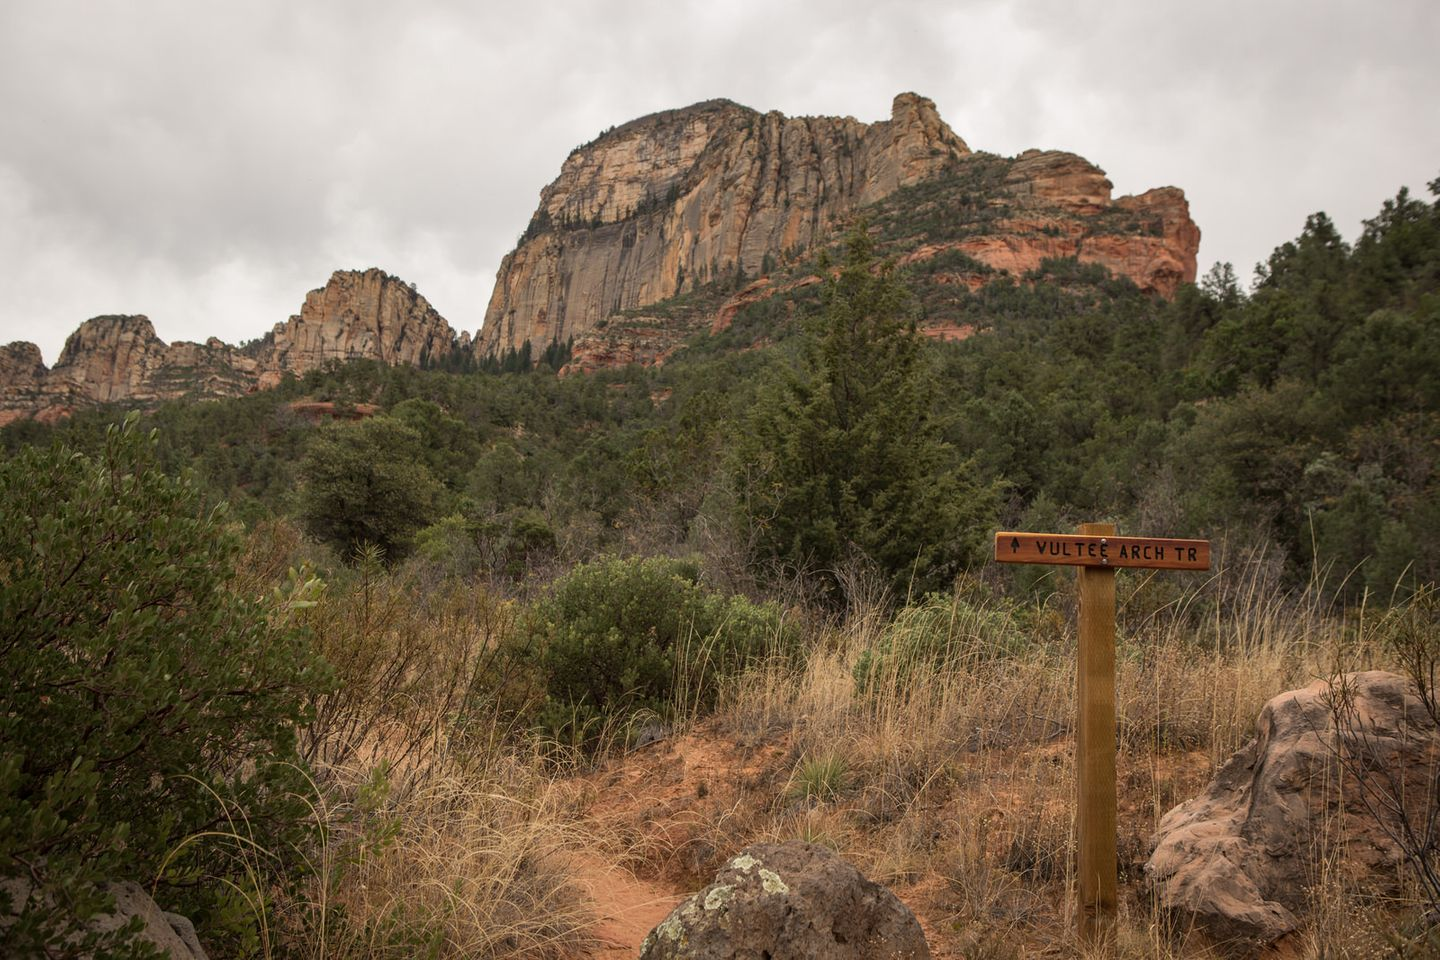 Dry Creek Road - Waypoint 15: Vultee Arch Hiking Trail